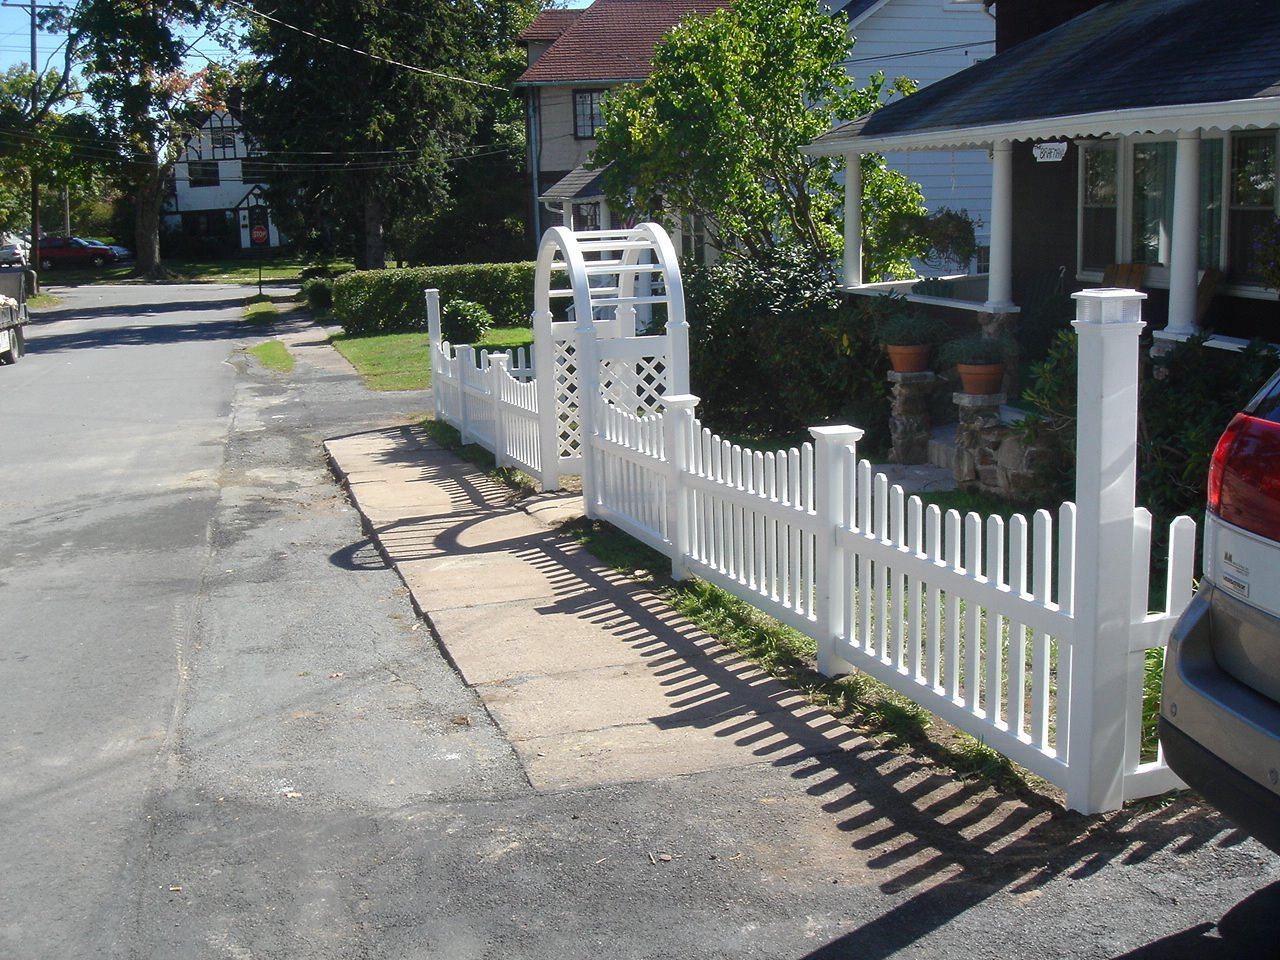 Vinyl Picket Fence With New England Post Caps And Palace Solar Cap On The Corner Posts Grand Arbor Over Opening